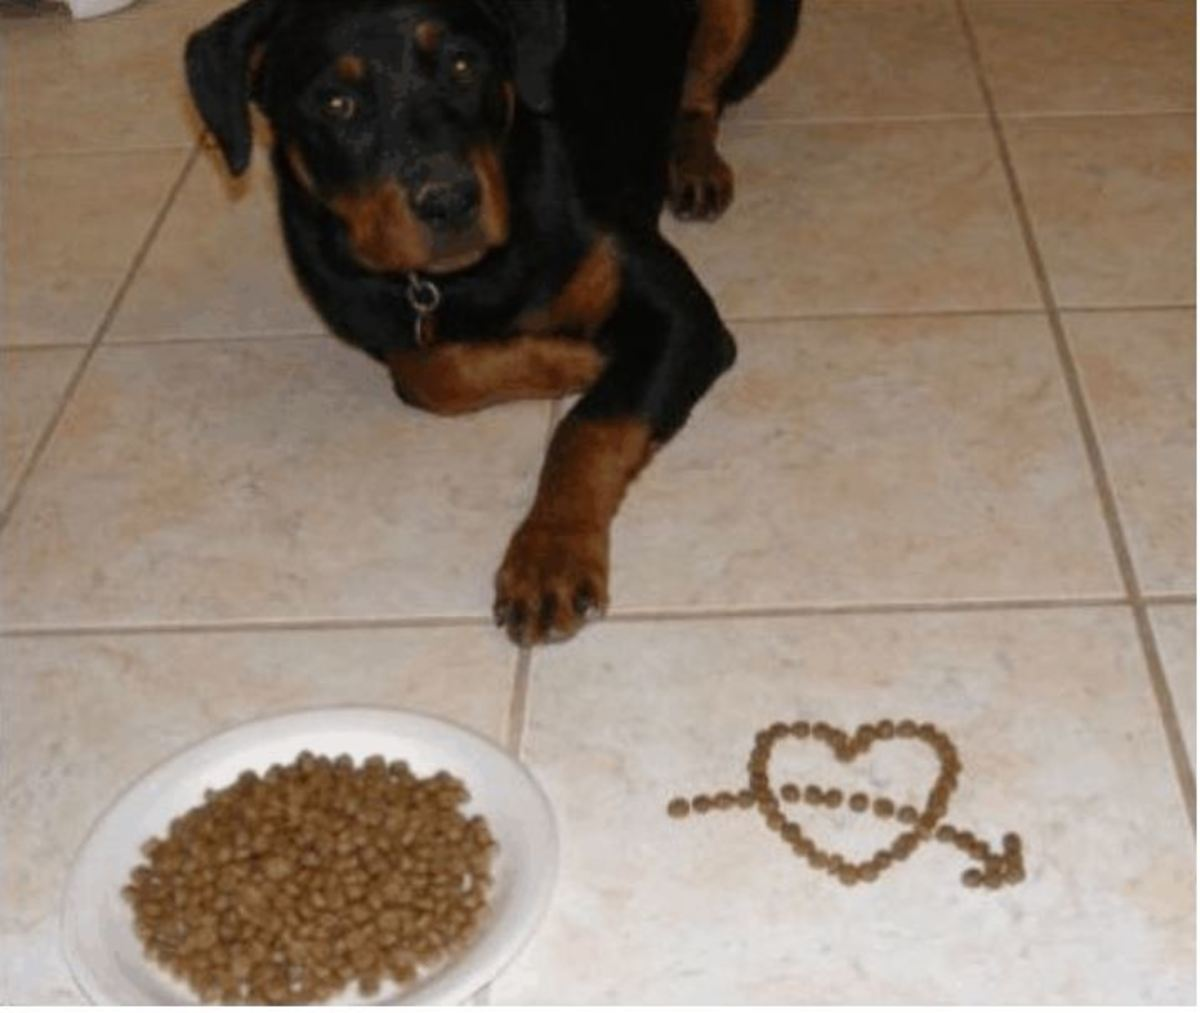 My Rottweiler politely waiting to be released to eat her meal.